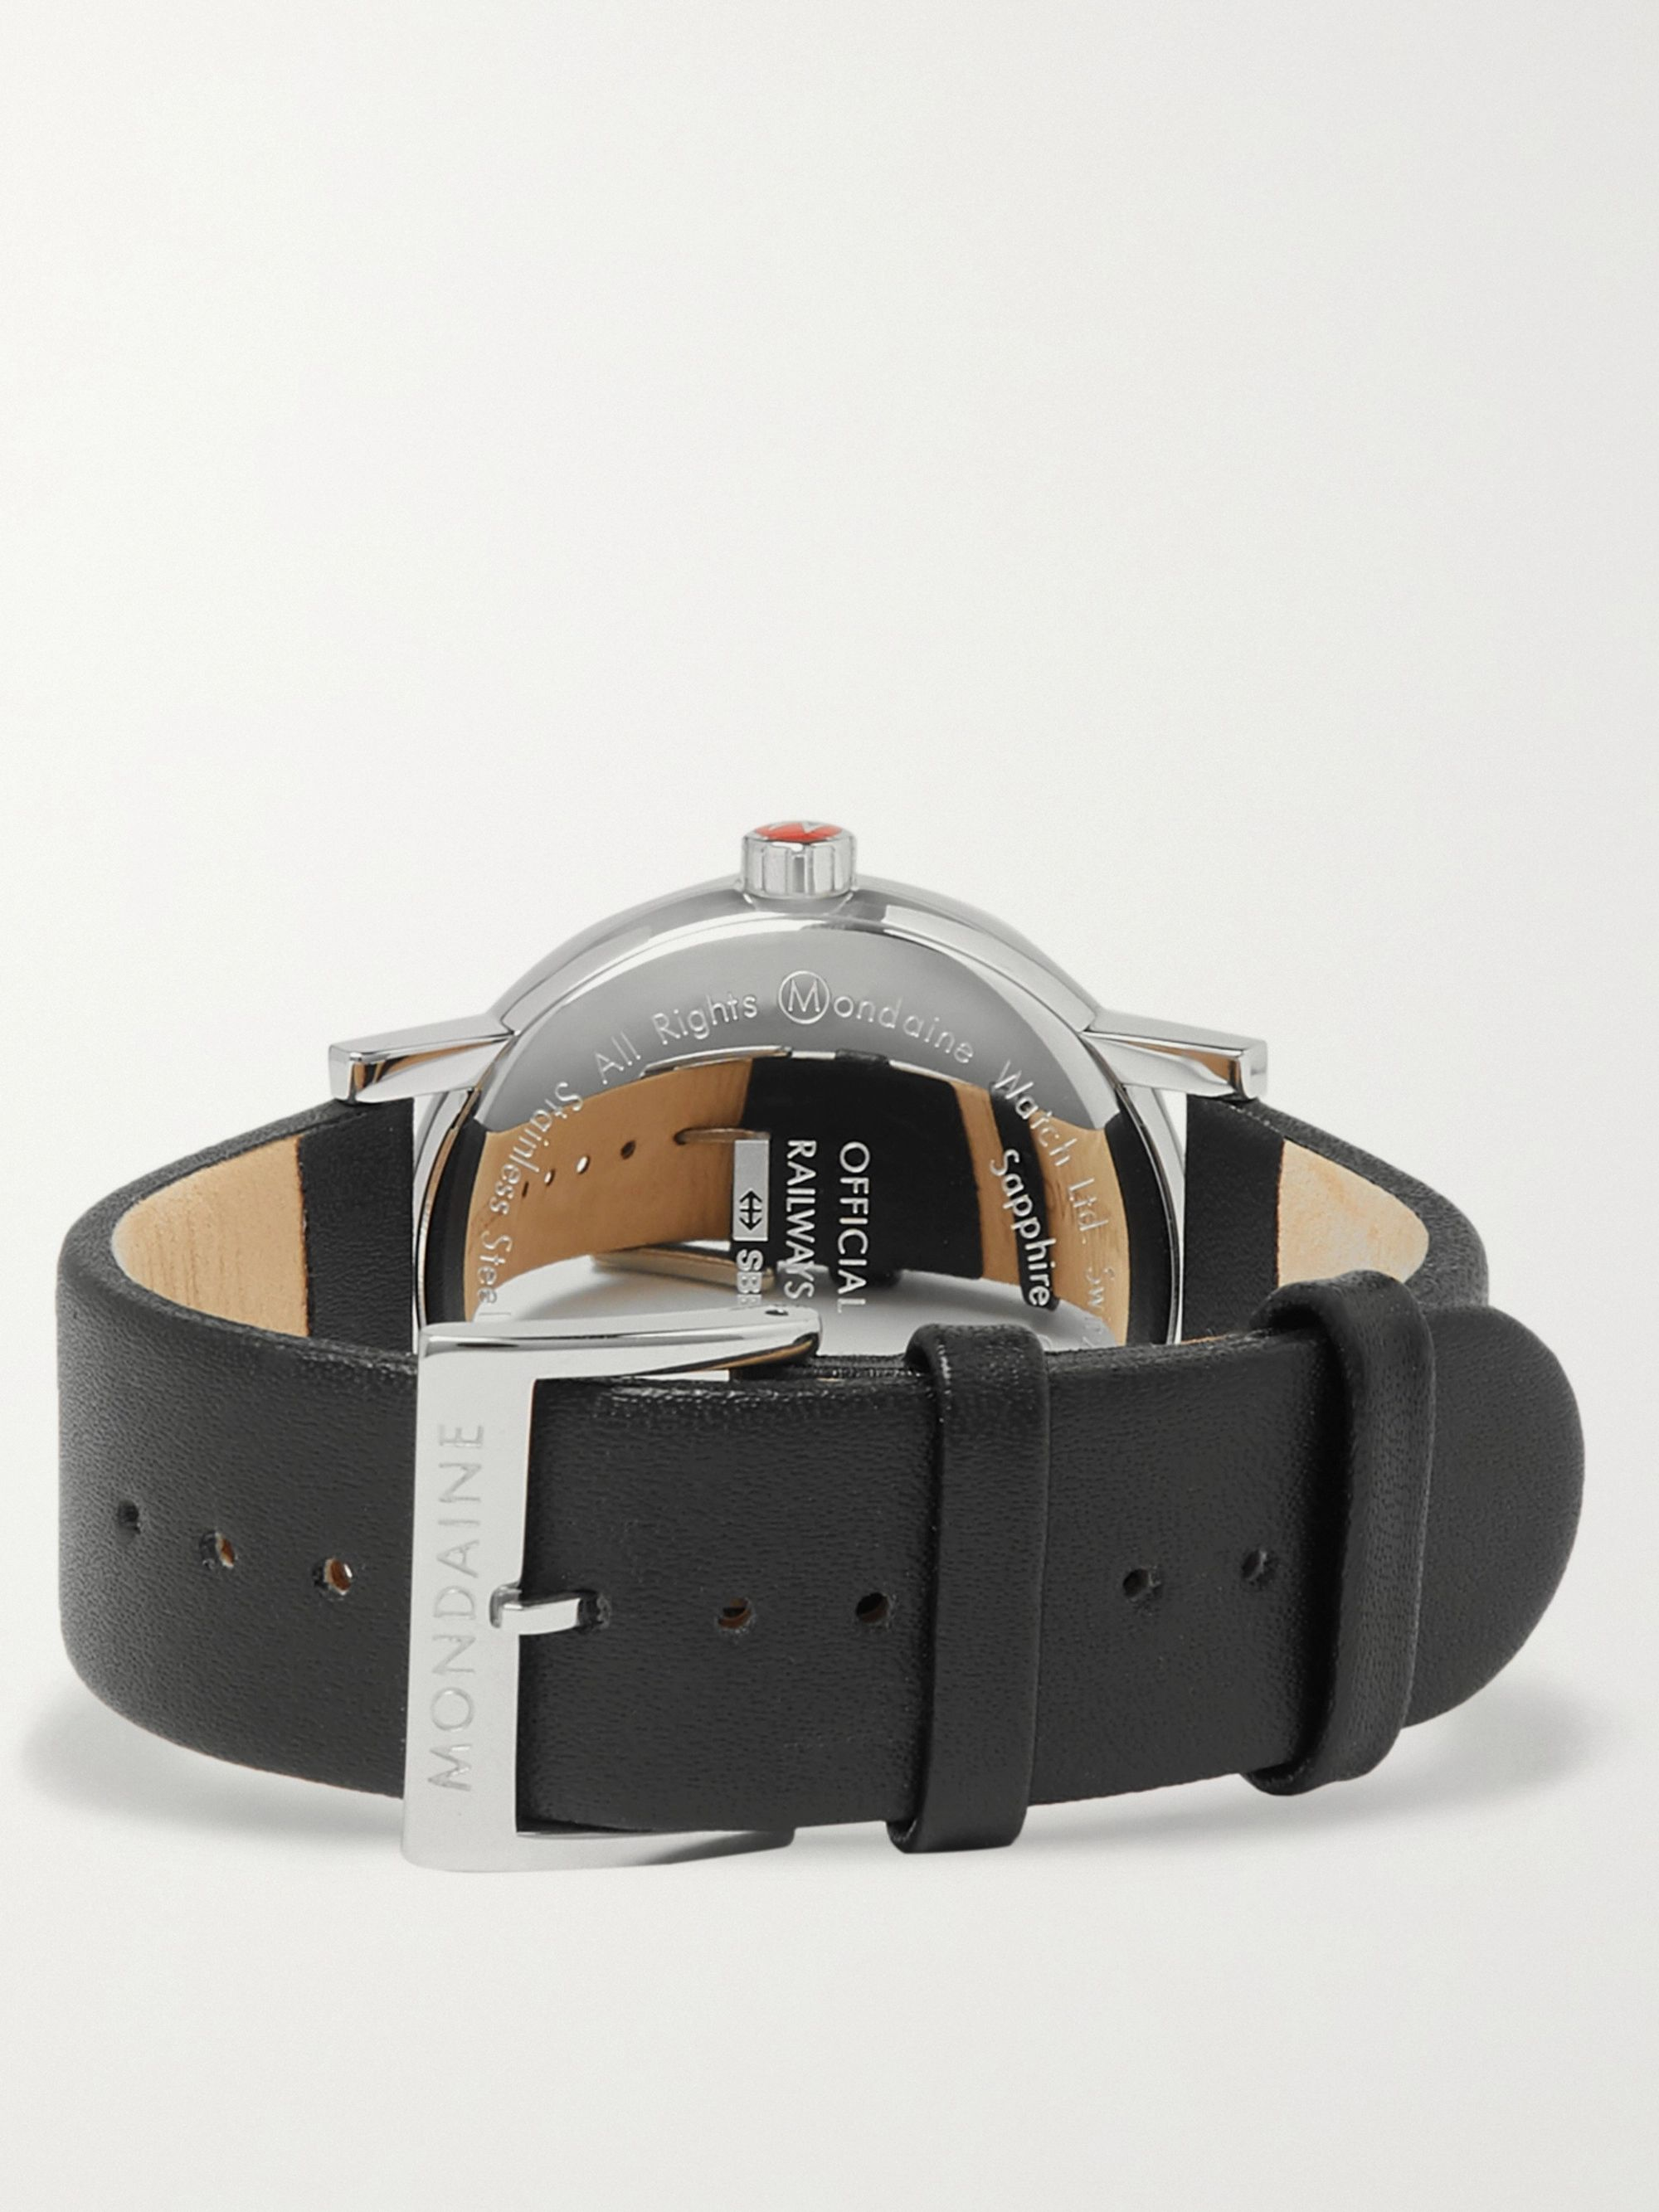 Mondaine Evo2 Stainless Steel and Leather Chronograph Watch